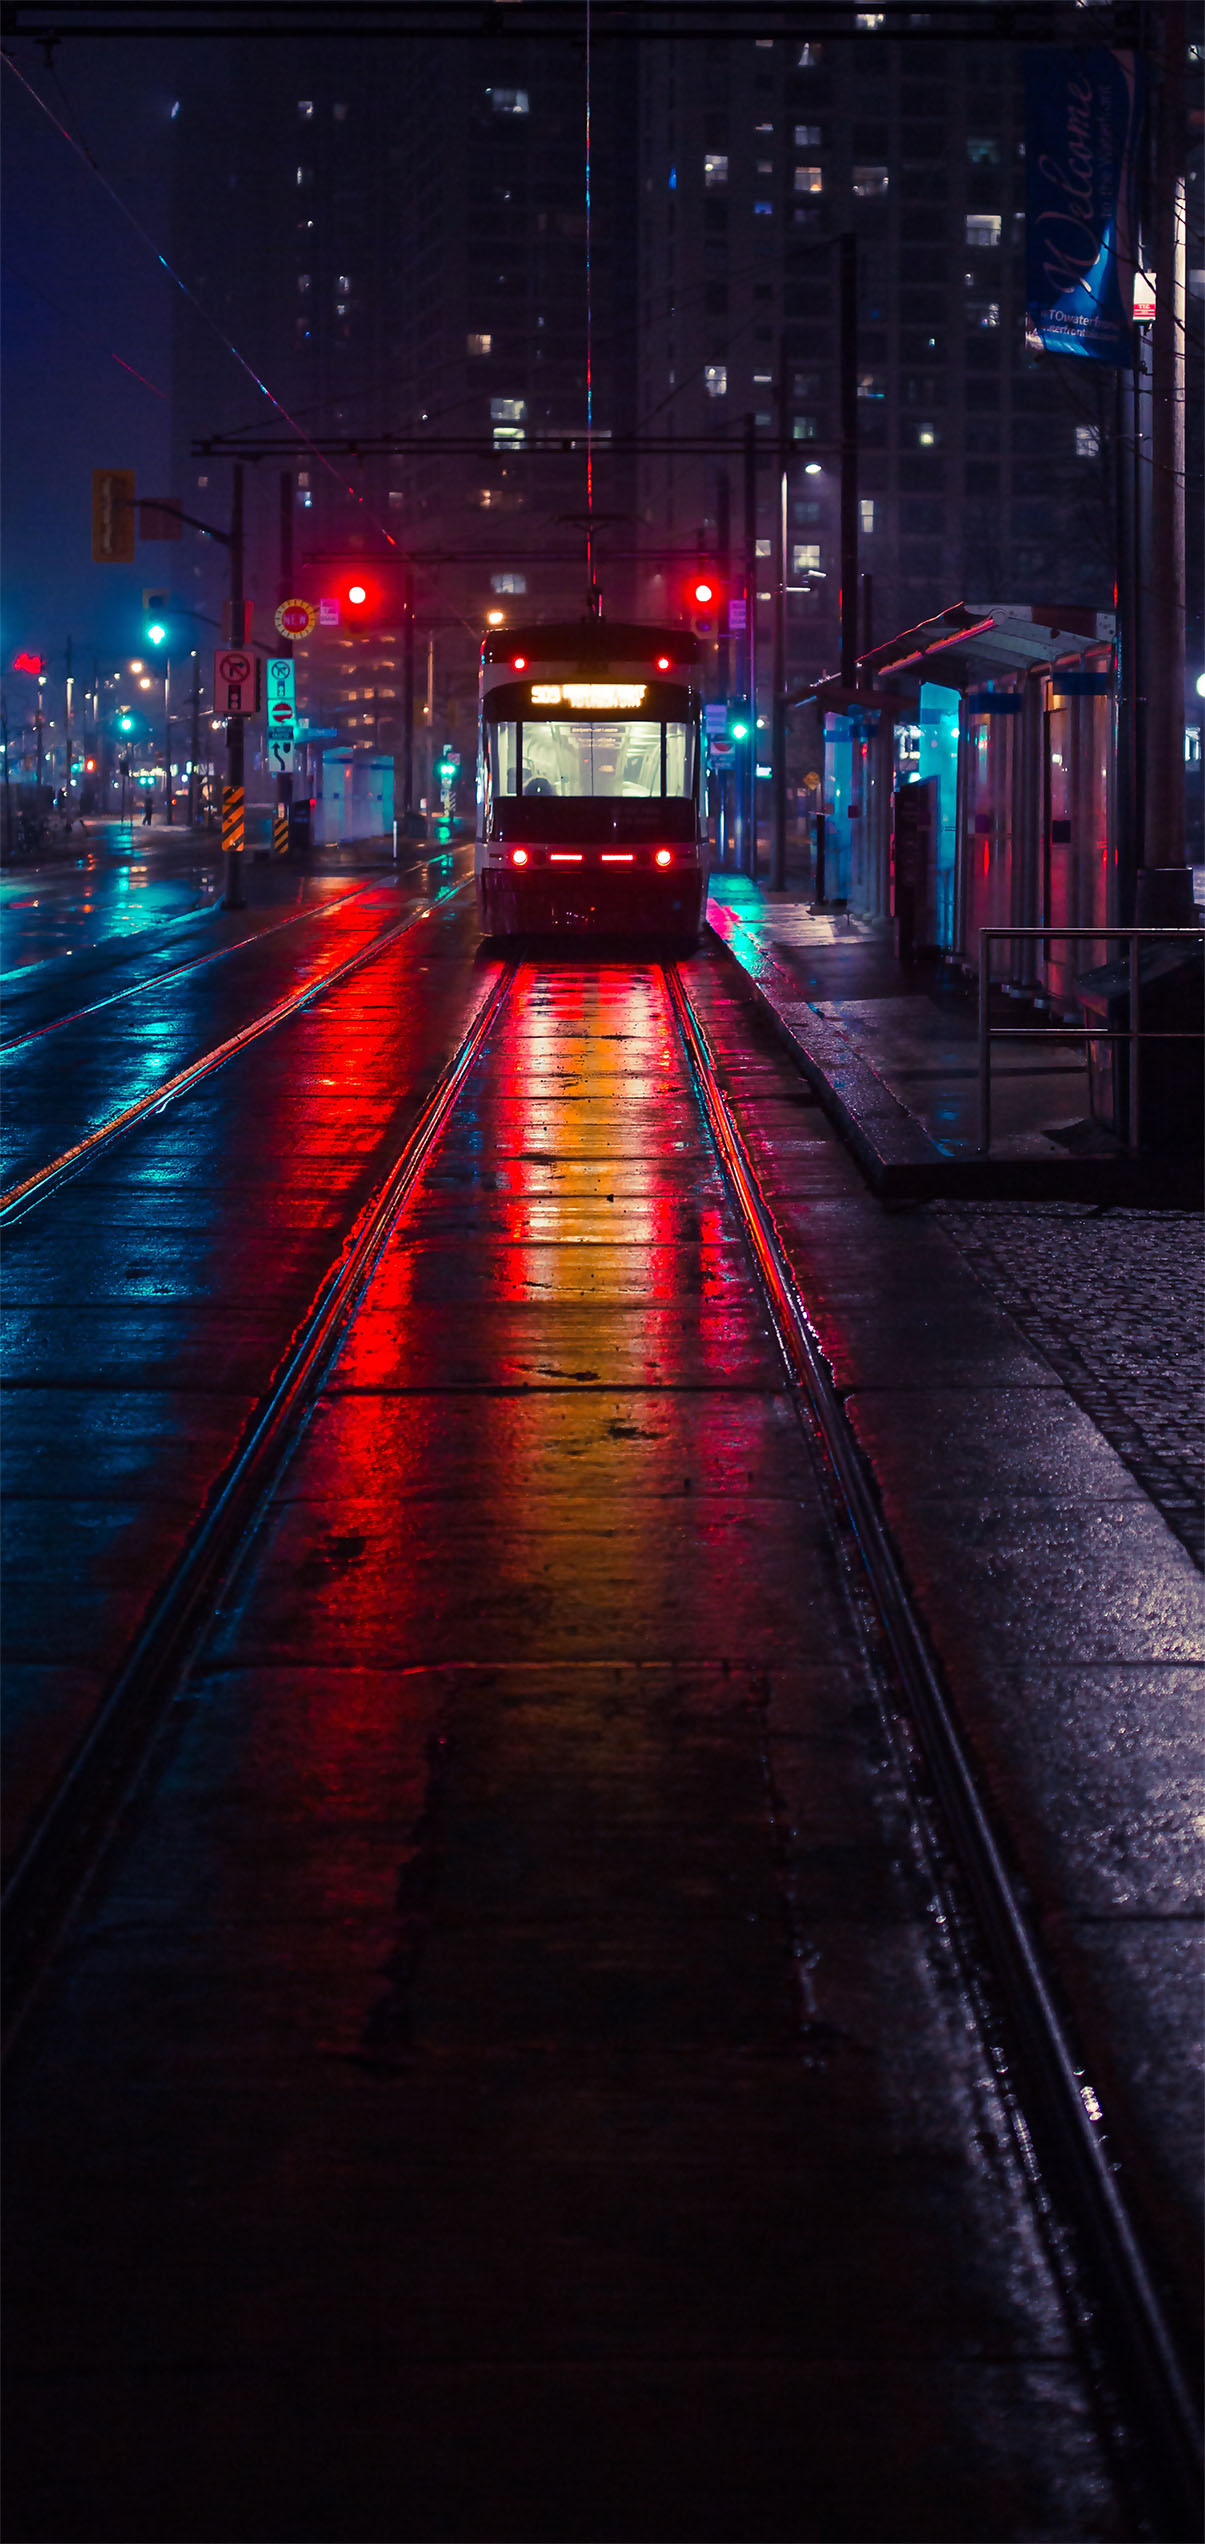 cool wallpaper for iphone night city hd 4k